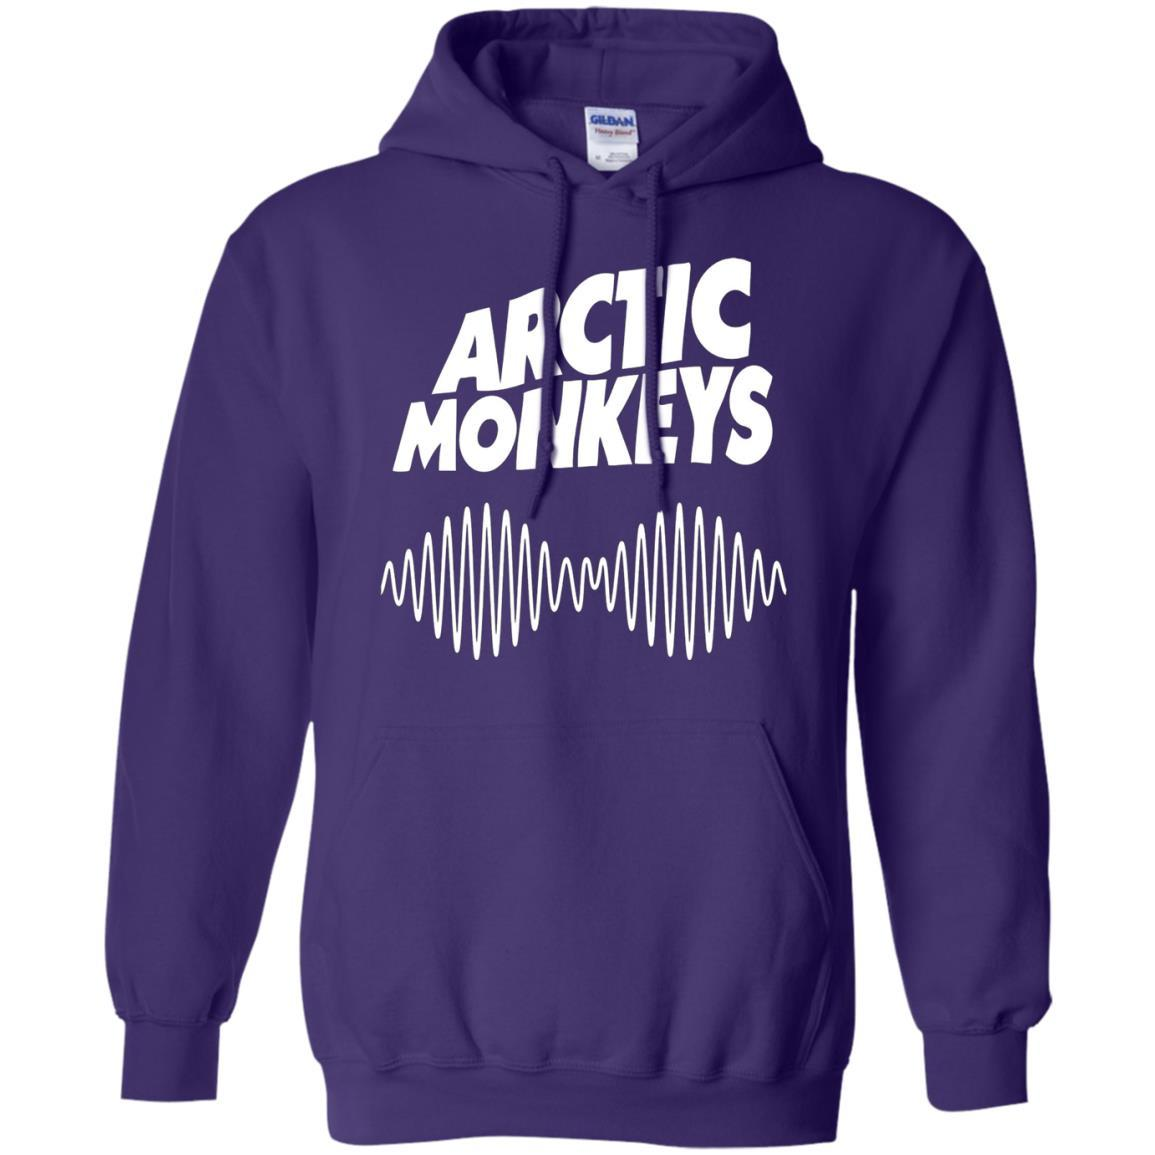 Artic Monkeys Soundwave Music Band - Pullover Hoodie Purple / 5XL